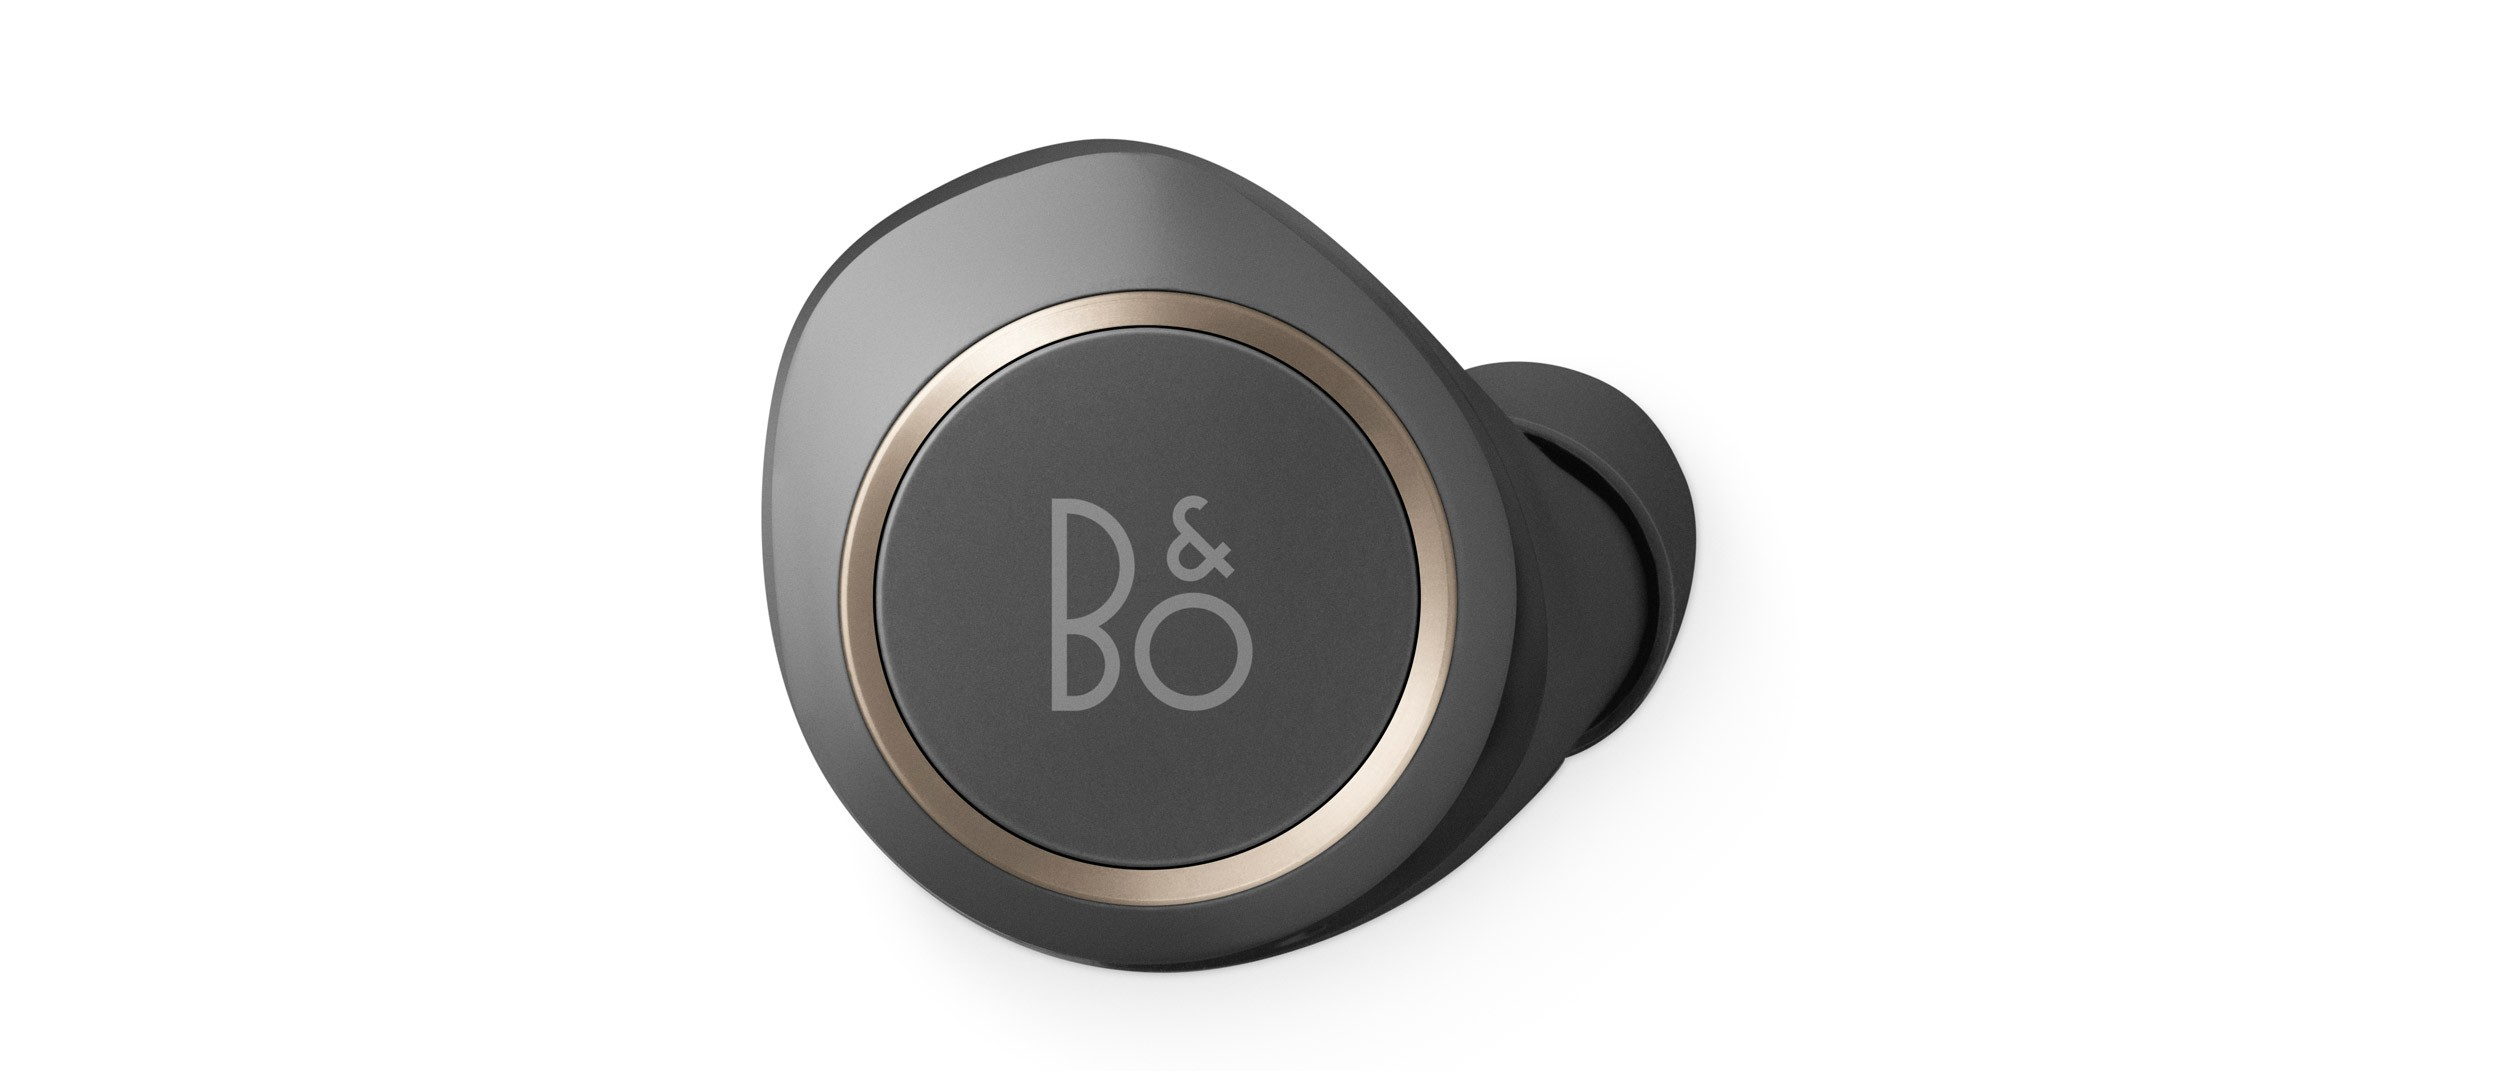 Desain Dan Harga Kitchen Set Paling Baik Untuk Beoplay E8 True Wireless Earbuds with Up to 4 Hours Battery In